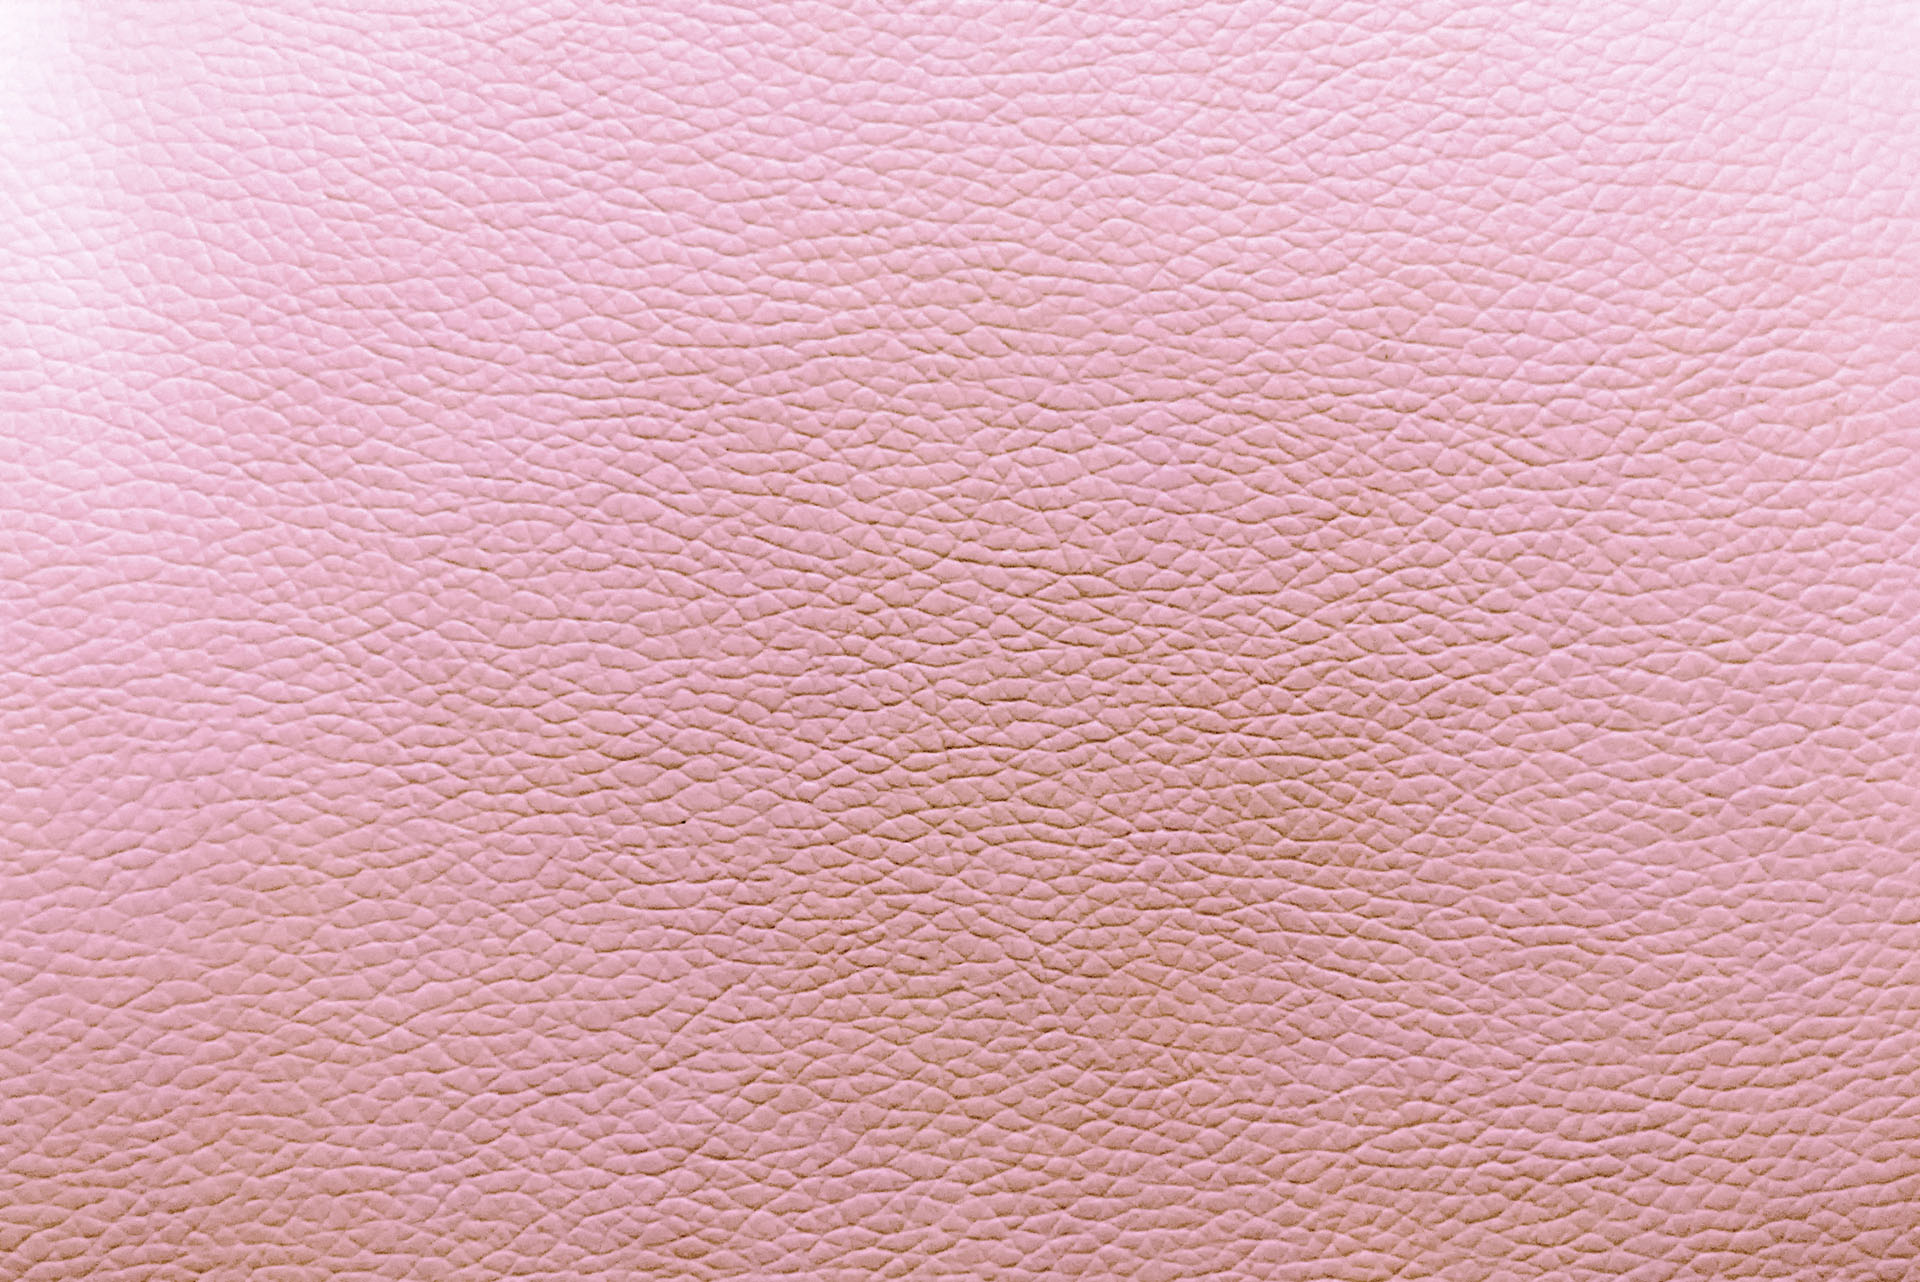 Background of a pink leather texture